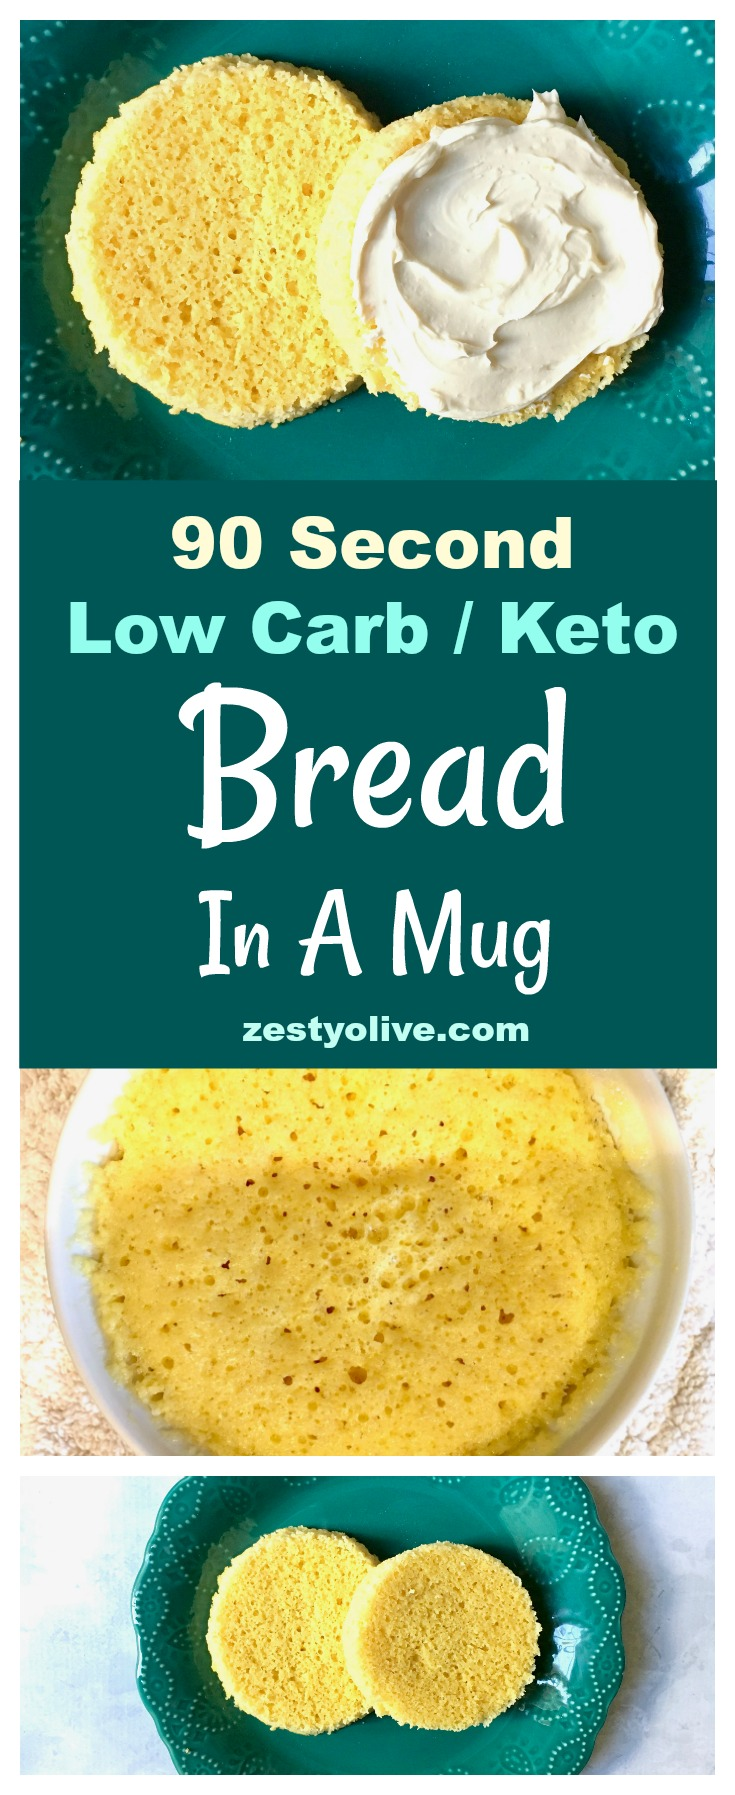 How To Make 90 Second Keto Low Carb Bread In A Mug Zesty